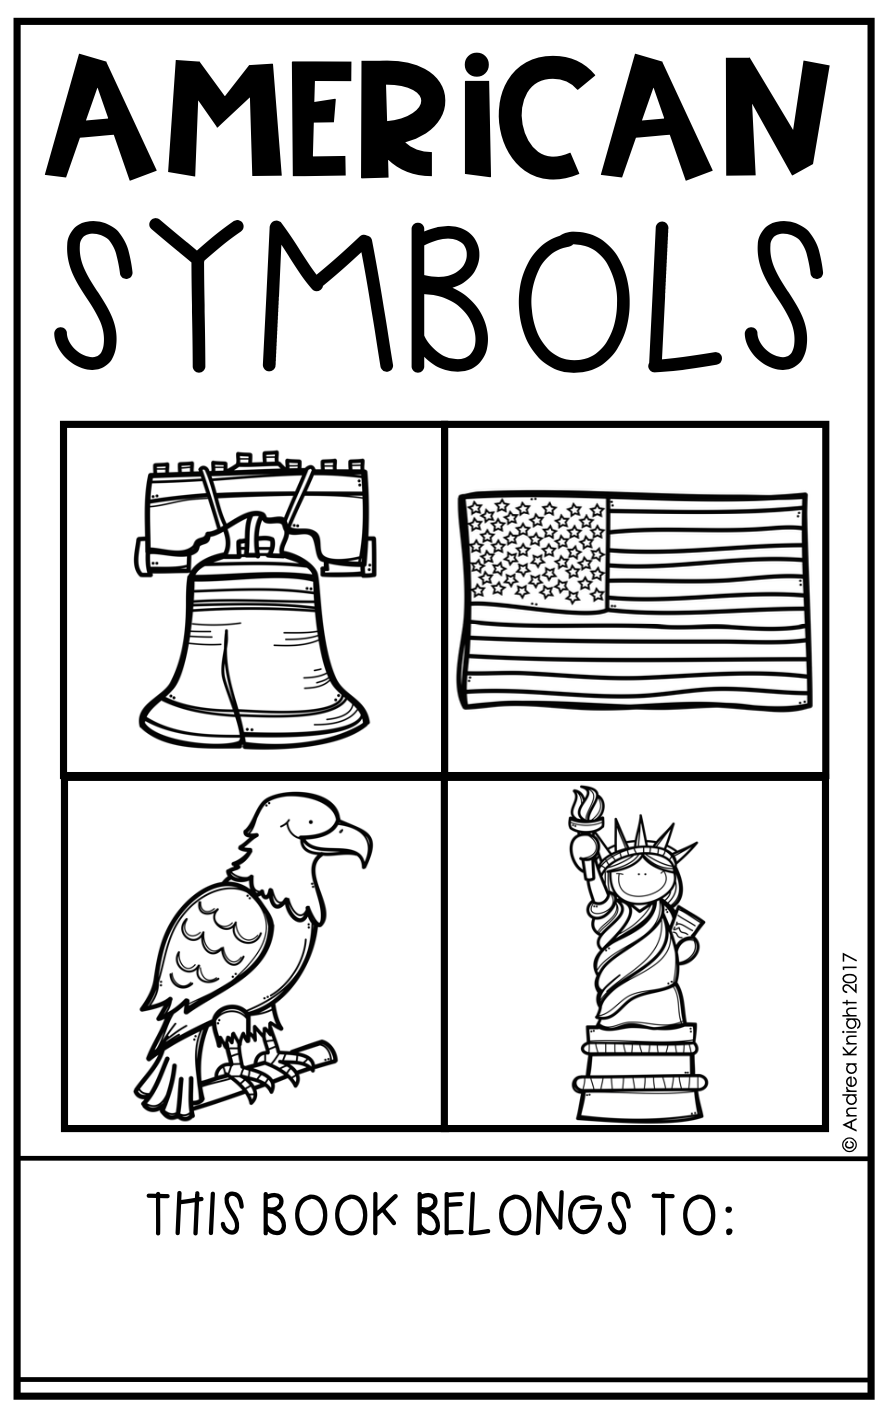 small resolution of American Symbols Book for Children   American symbols book